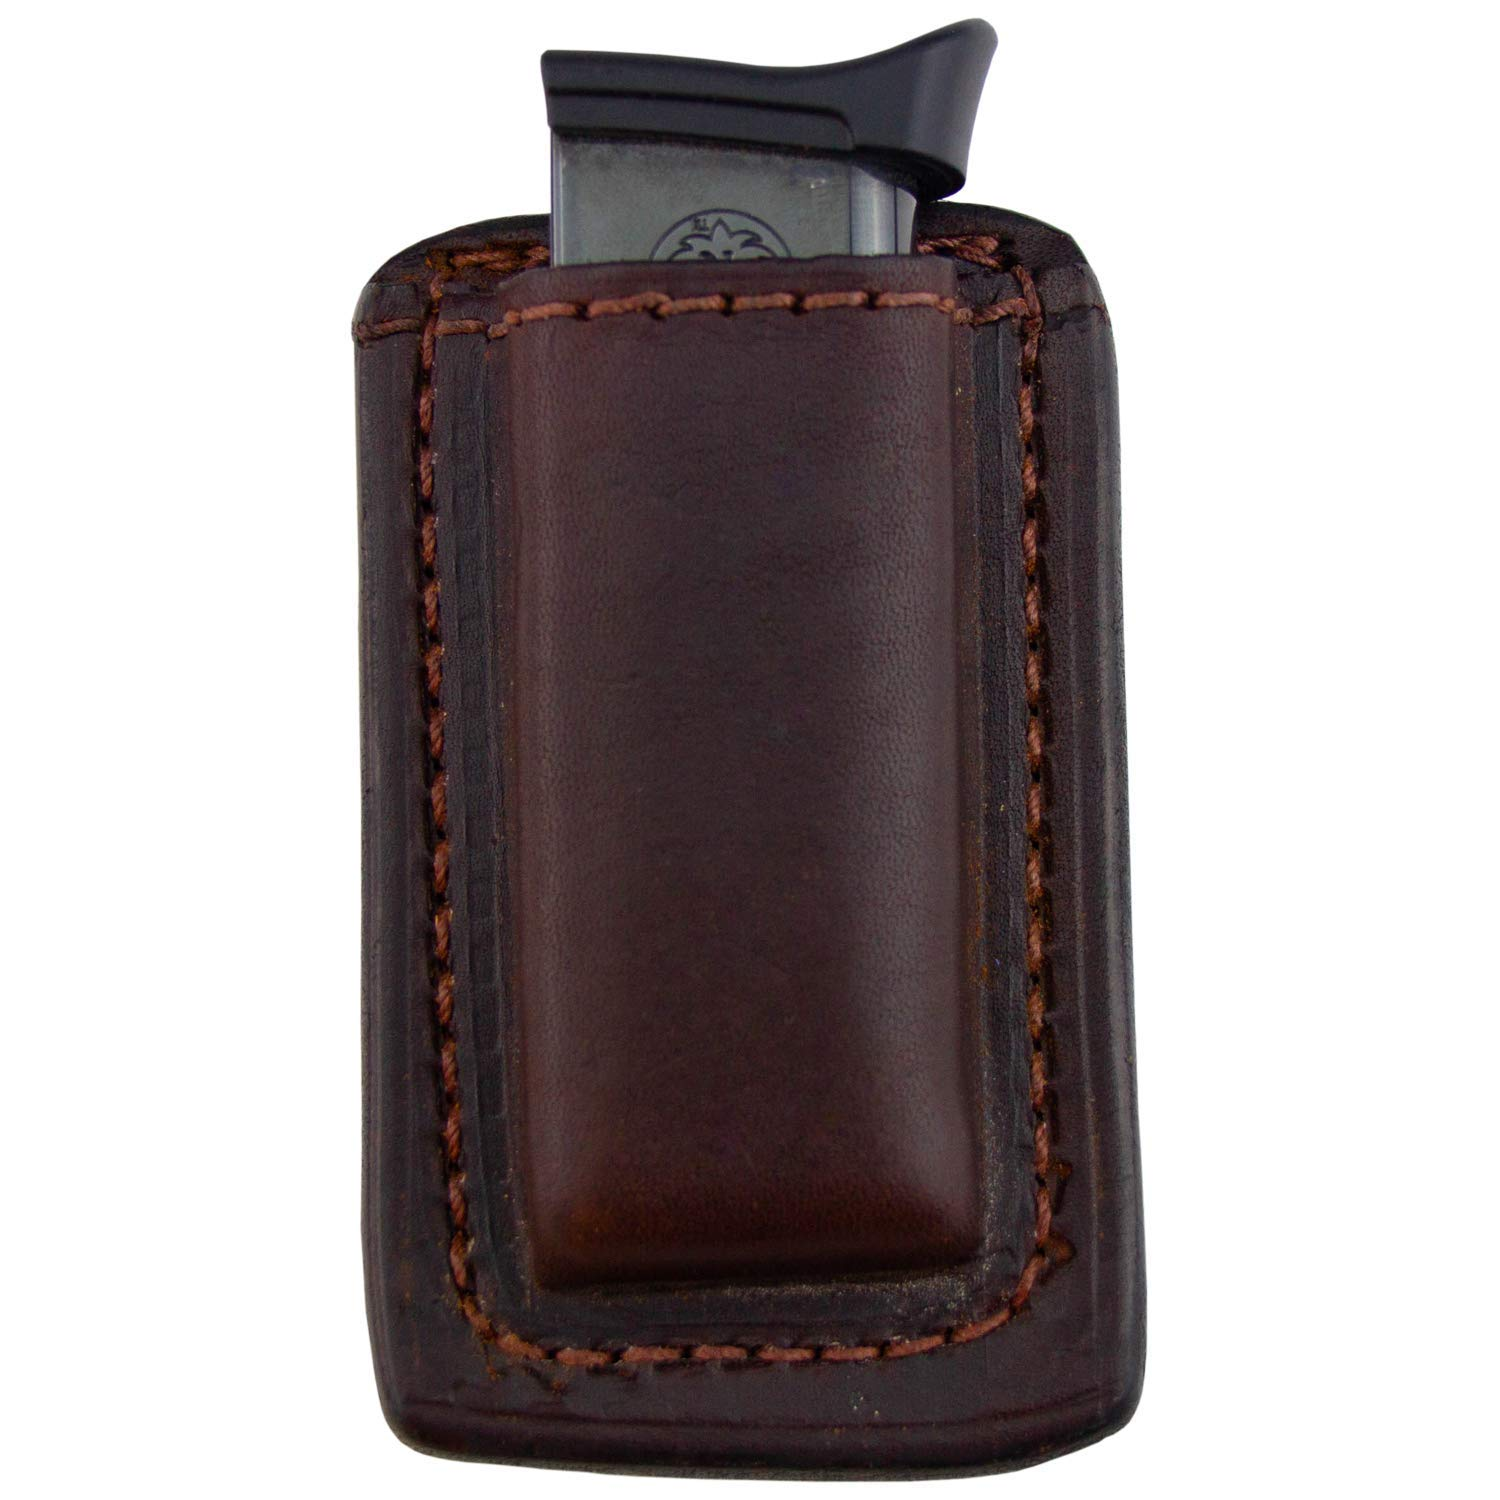 Relentless Tactical Leather Magazine Holder | Made in USA | Sizes to fit virtually Any 9mm.40.45 or .380 Pistol Mag | Single or Double Stack | IWB or OWB 380 Brown by Relentless Tactical